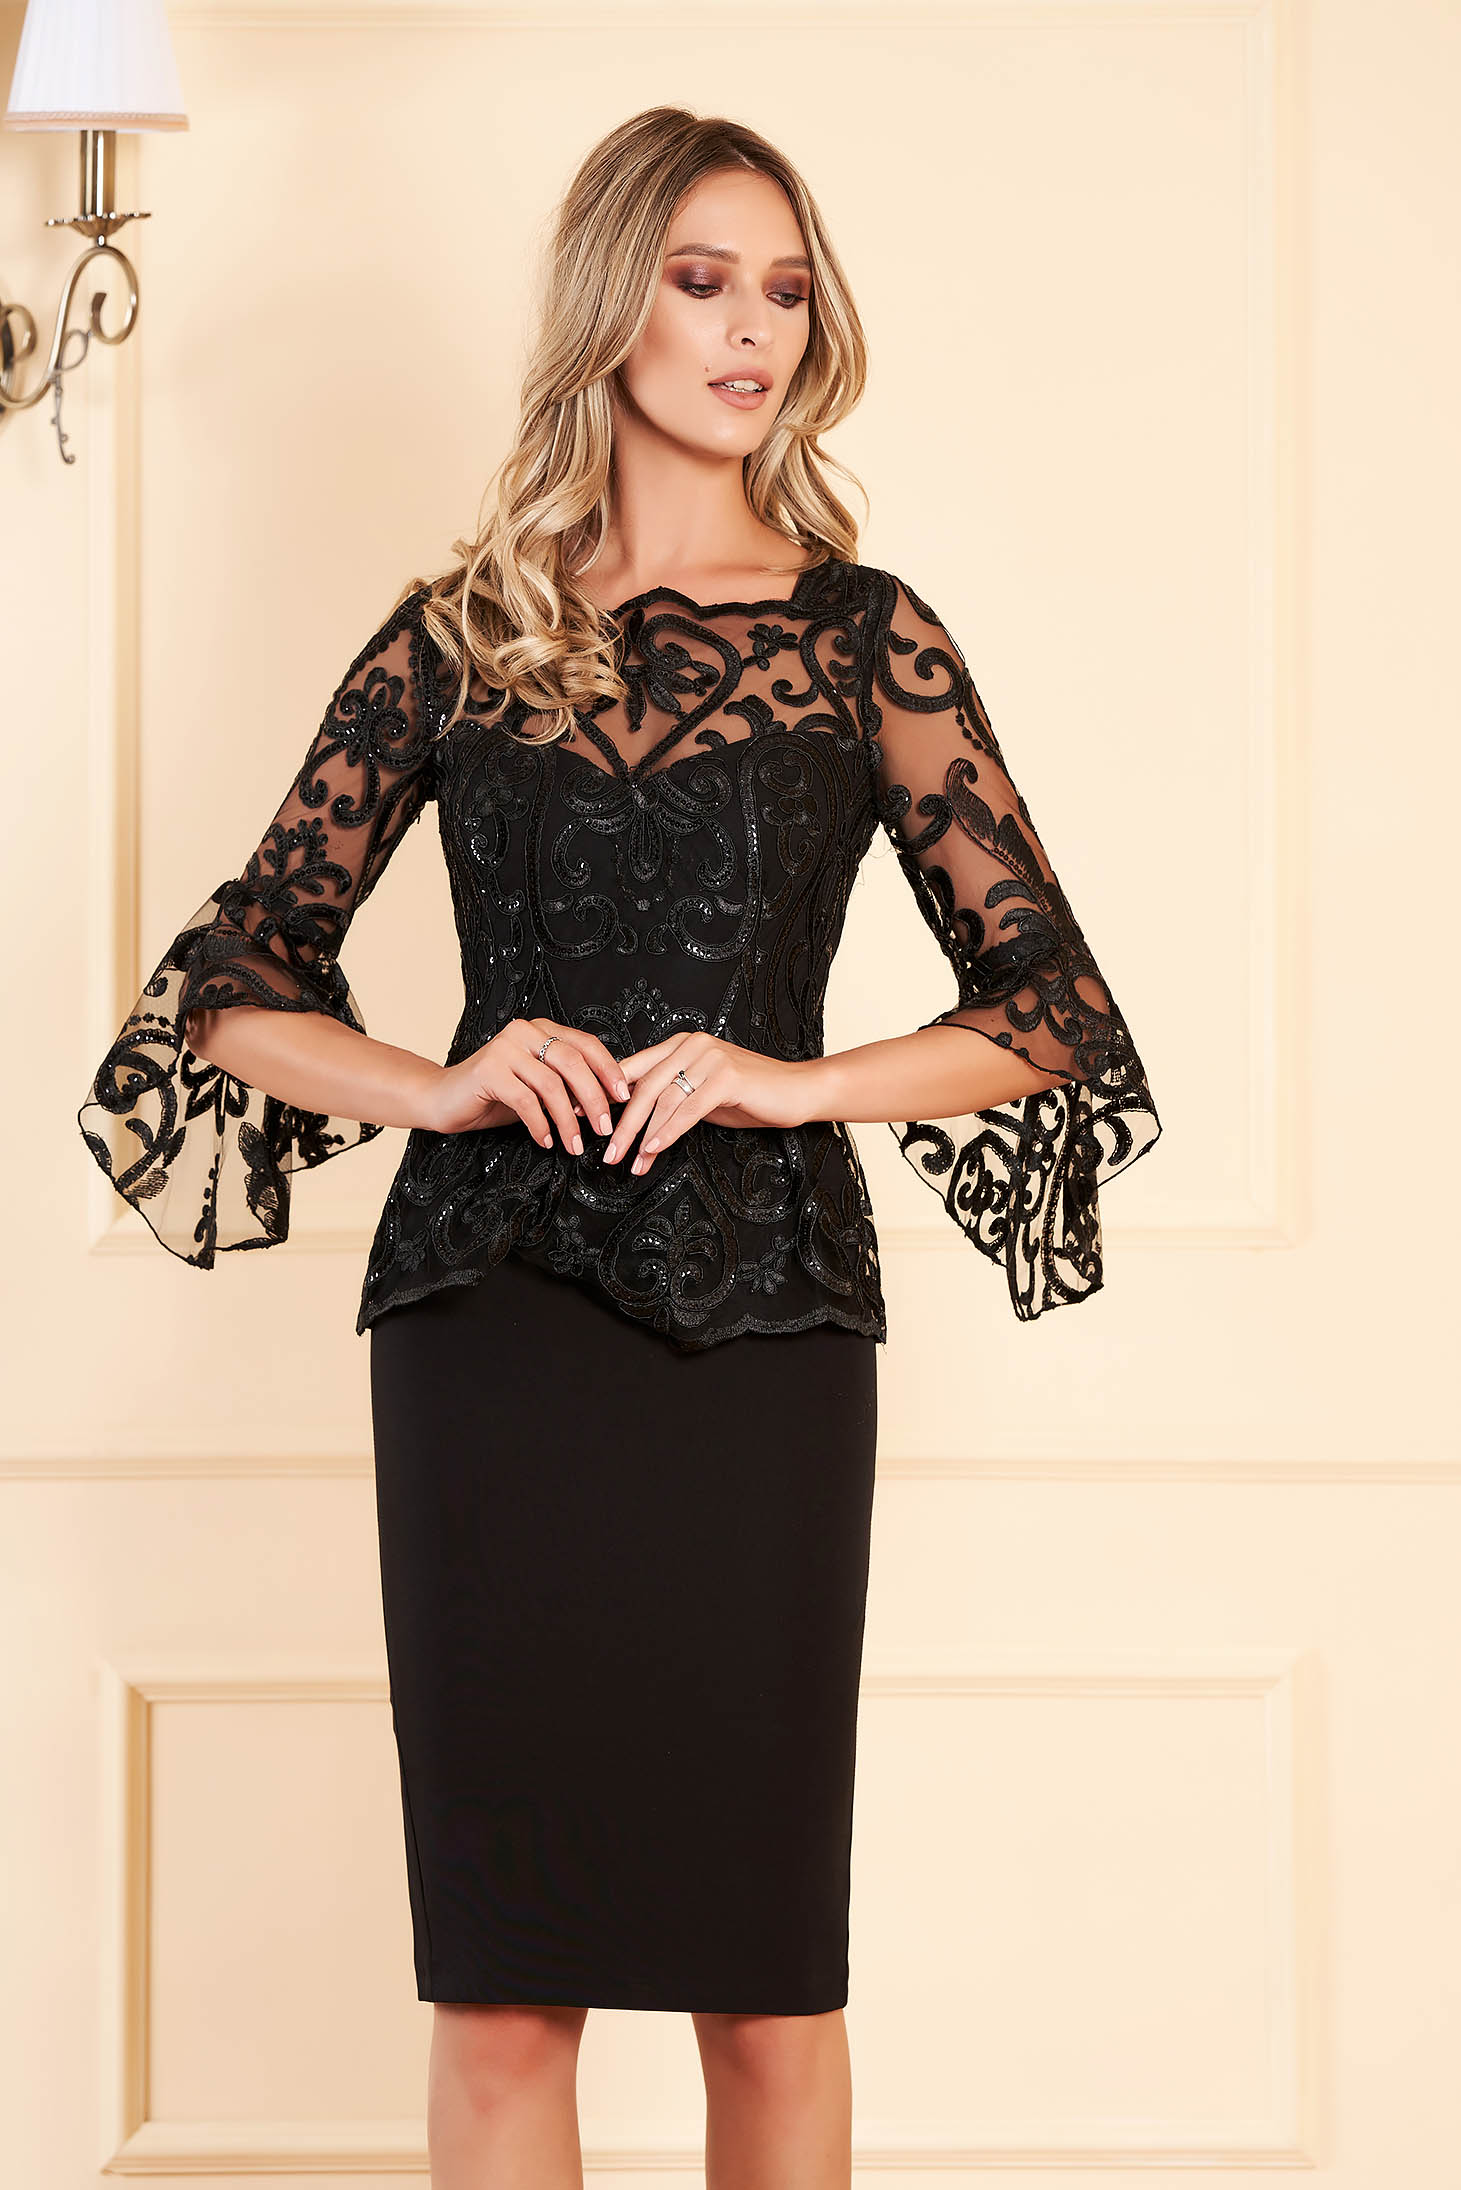 Black dress occasional midi pencil peplum with inside lining with bell sleeve with sequin embellished details